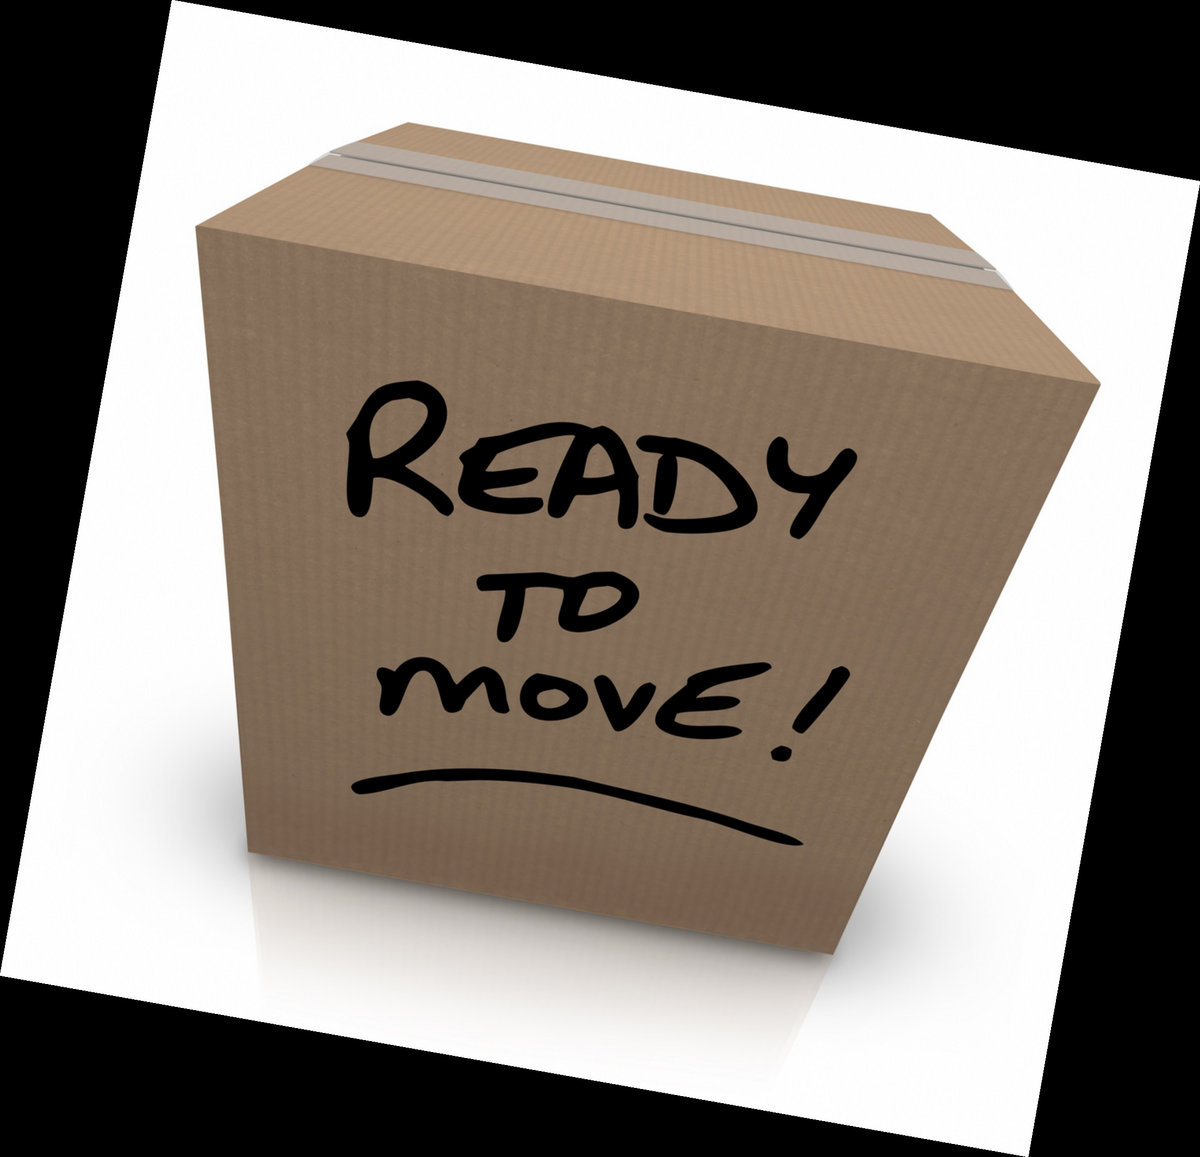 Moving Company Quotes >> Num 1 855 789 2734 Free Online Cheap Moving Company Quotes